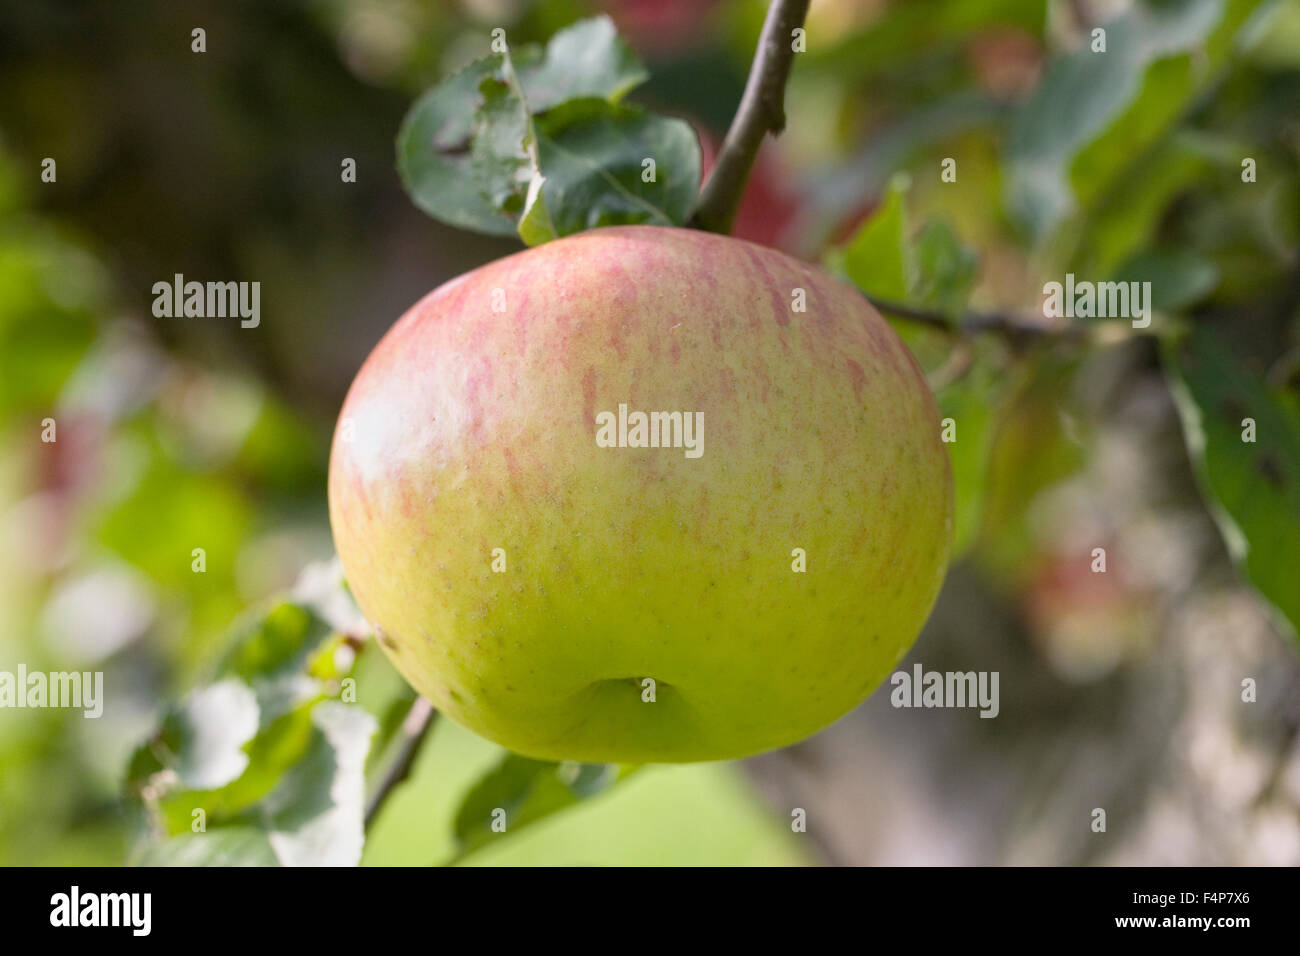 Malus domestica 'Bramley's seedling'. Apples growing in an English orchard. - Stock Image